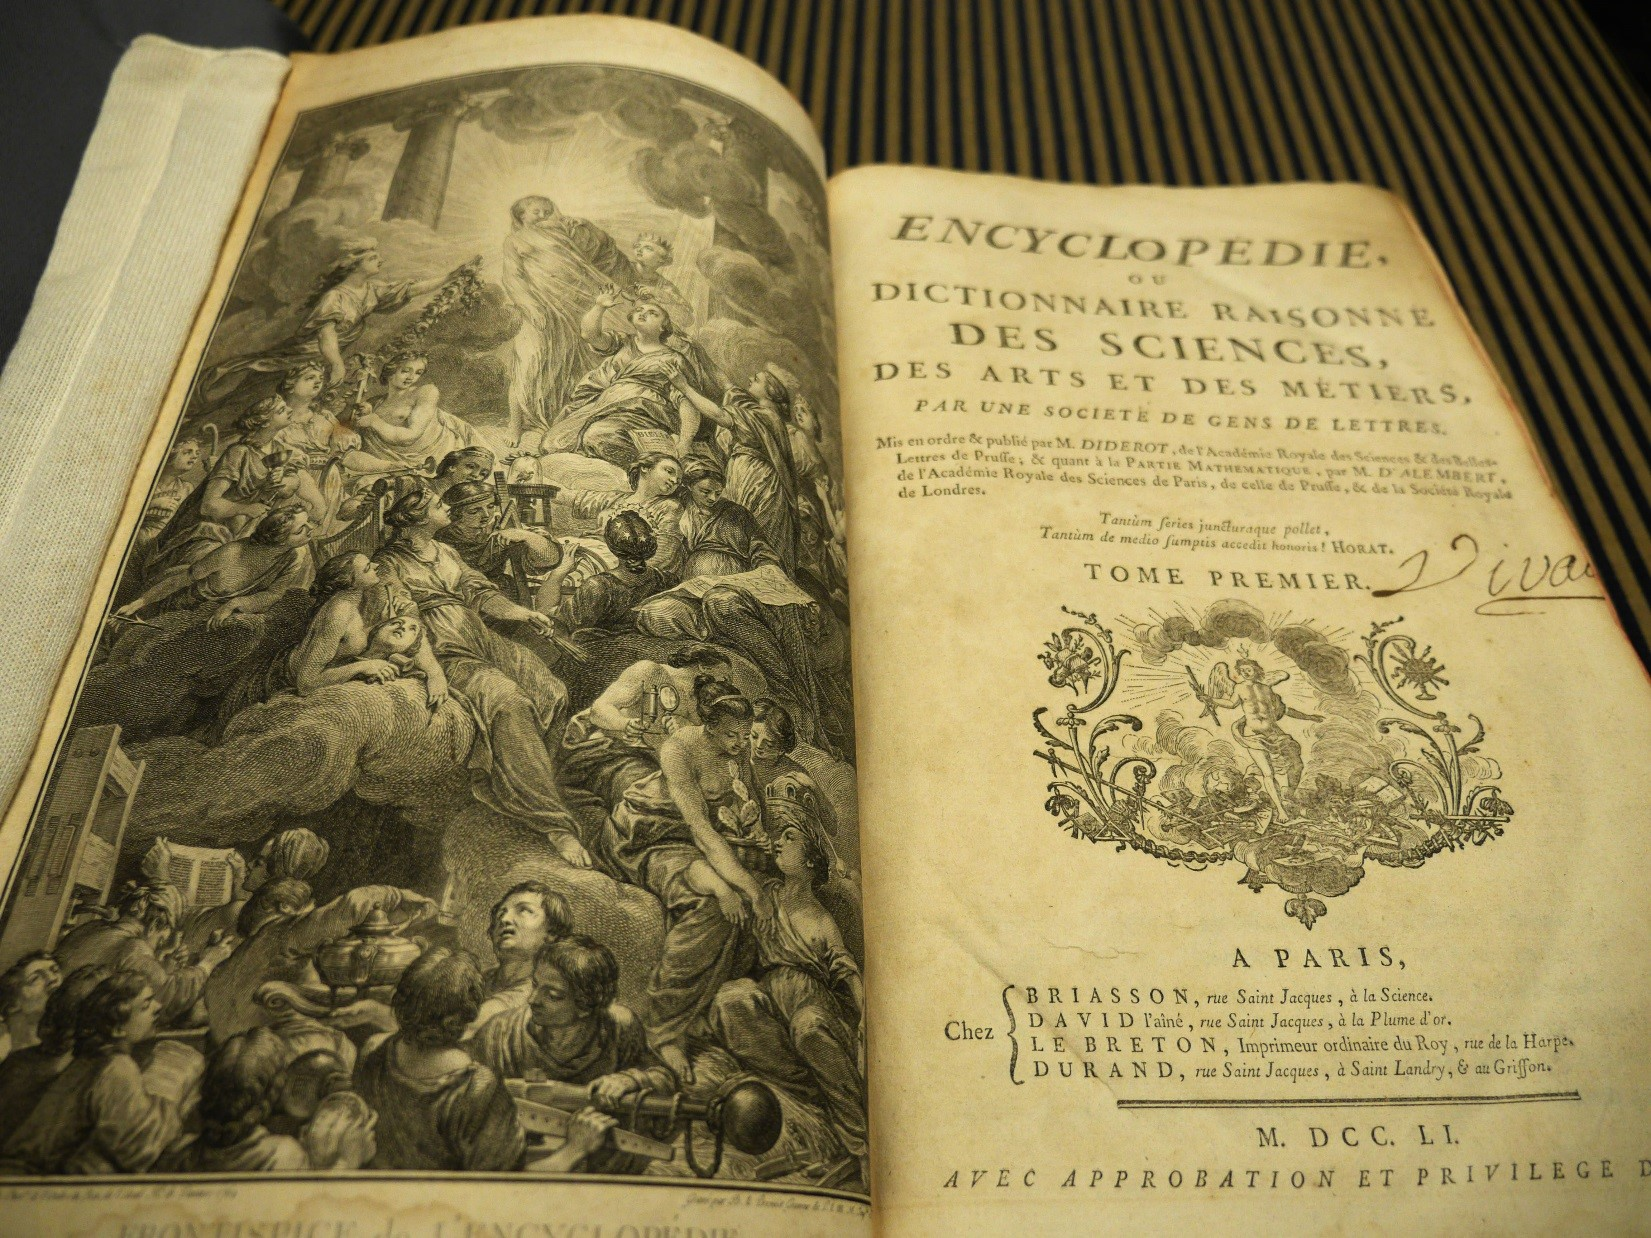 denis diderot famous collecting essays book The encyclopedia selections by denis diderot and a great selection of similar used, new and collectible books from m diderot's famous.